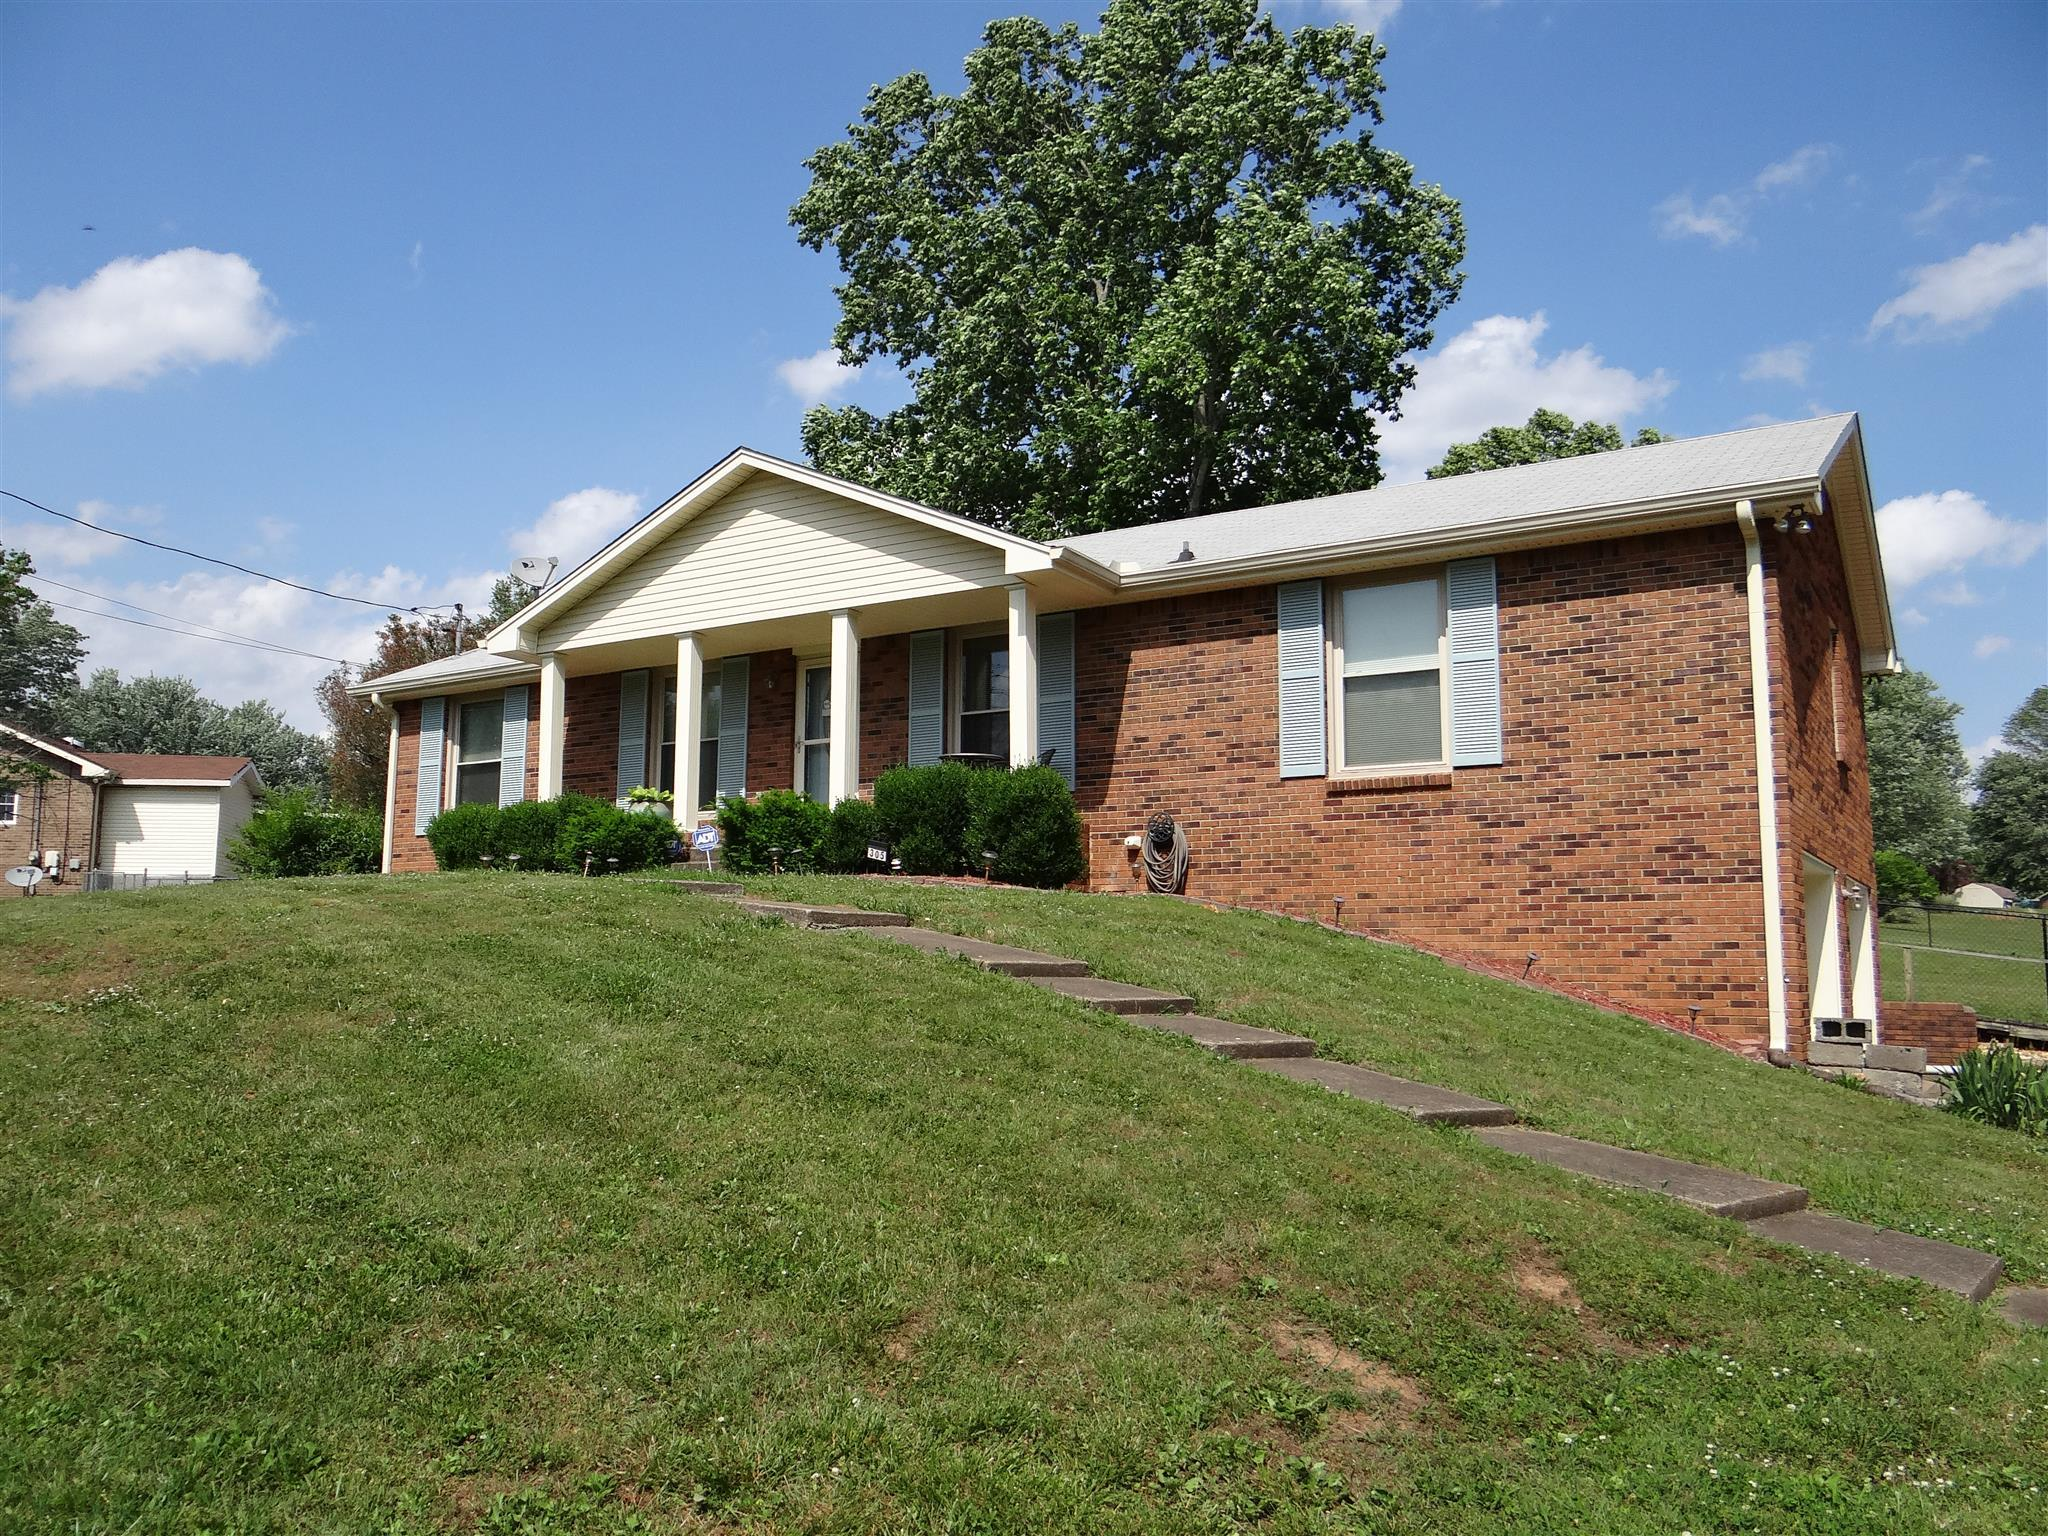 305 Justice Dr, Clarksville, TN 37043 (MLS #RTC2044547) :: CityLiving Group